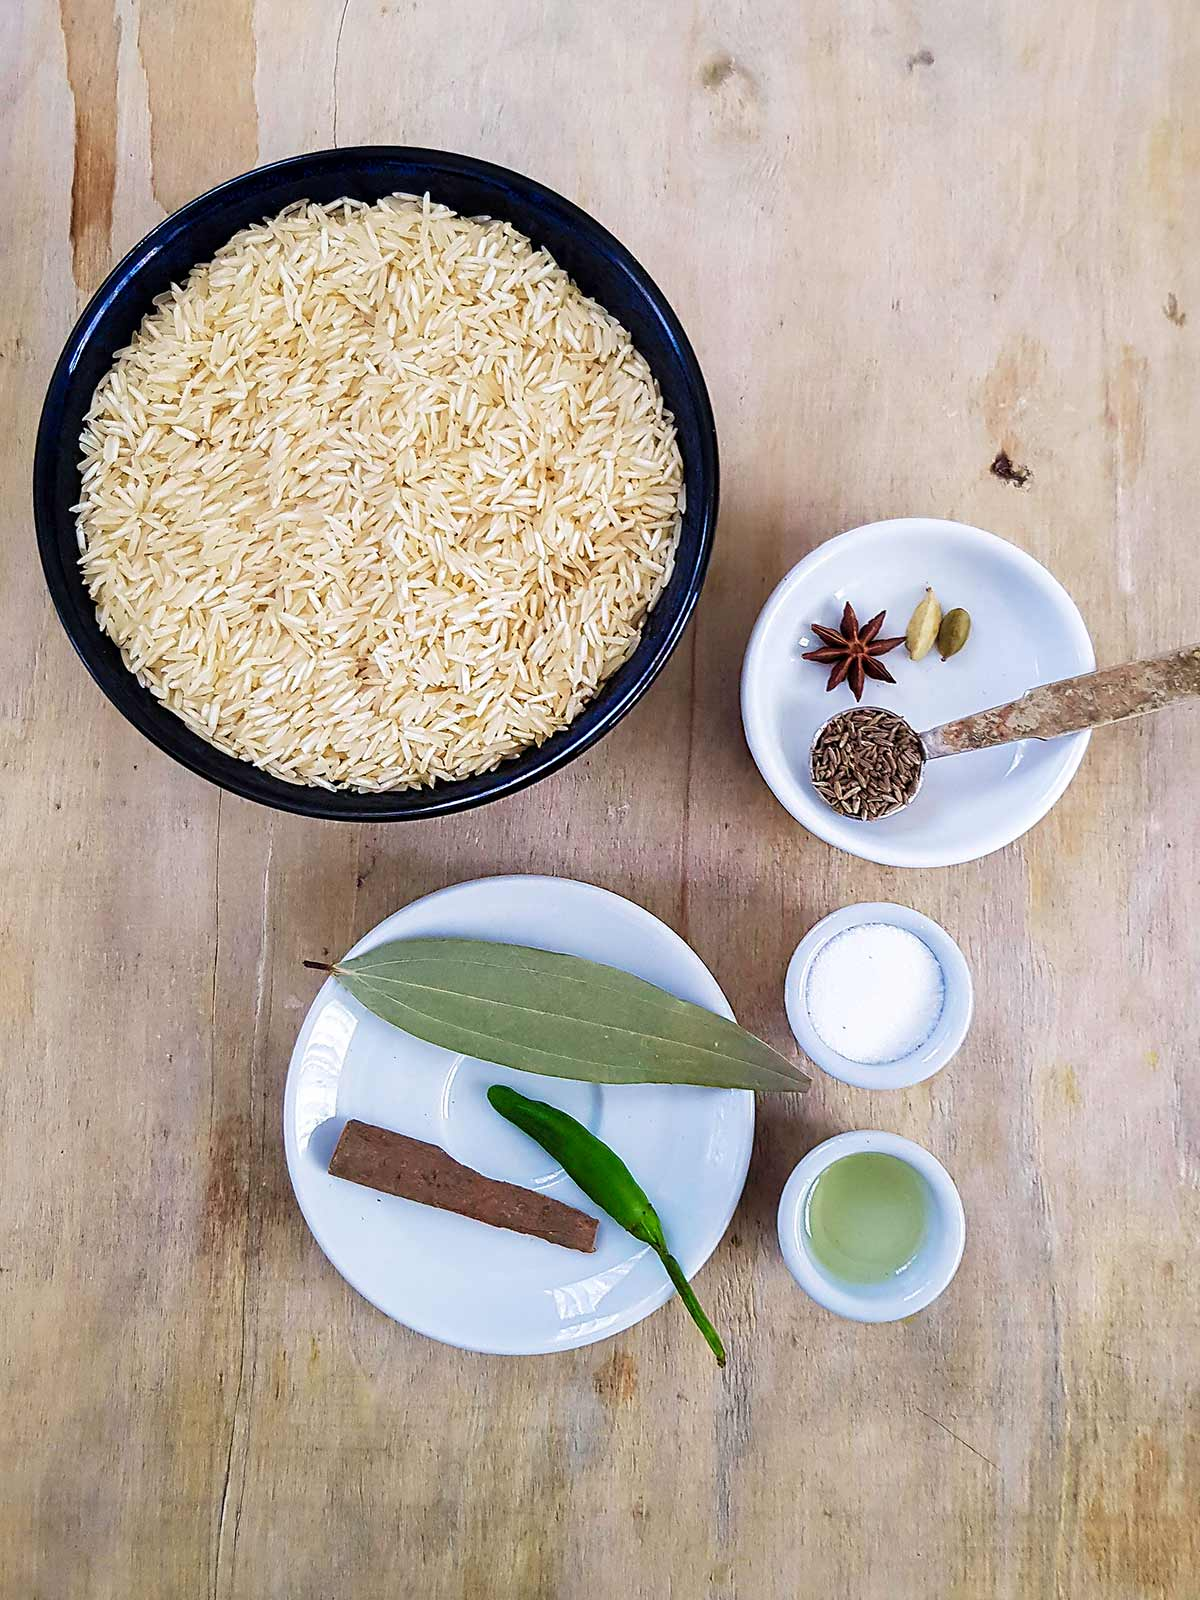 Rice and herbs spices for cooking rice